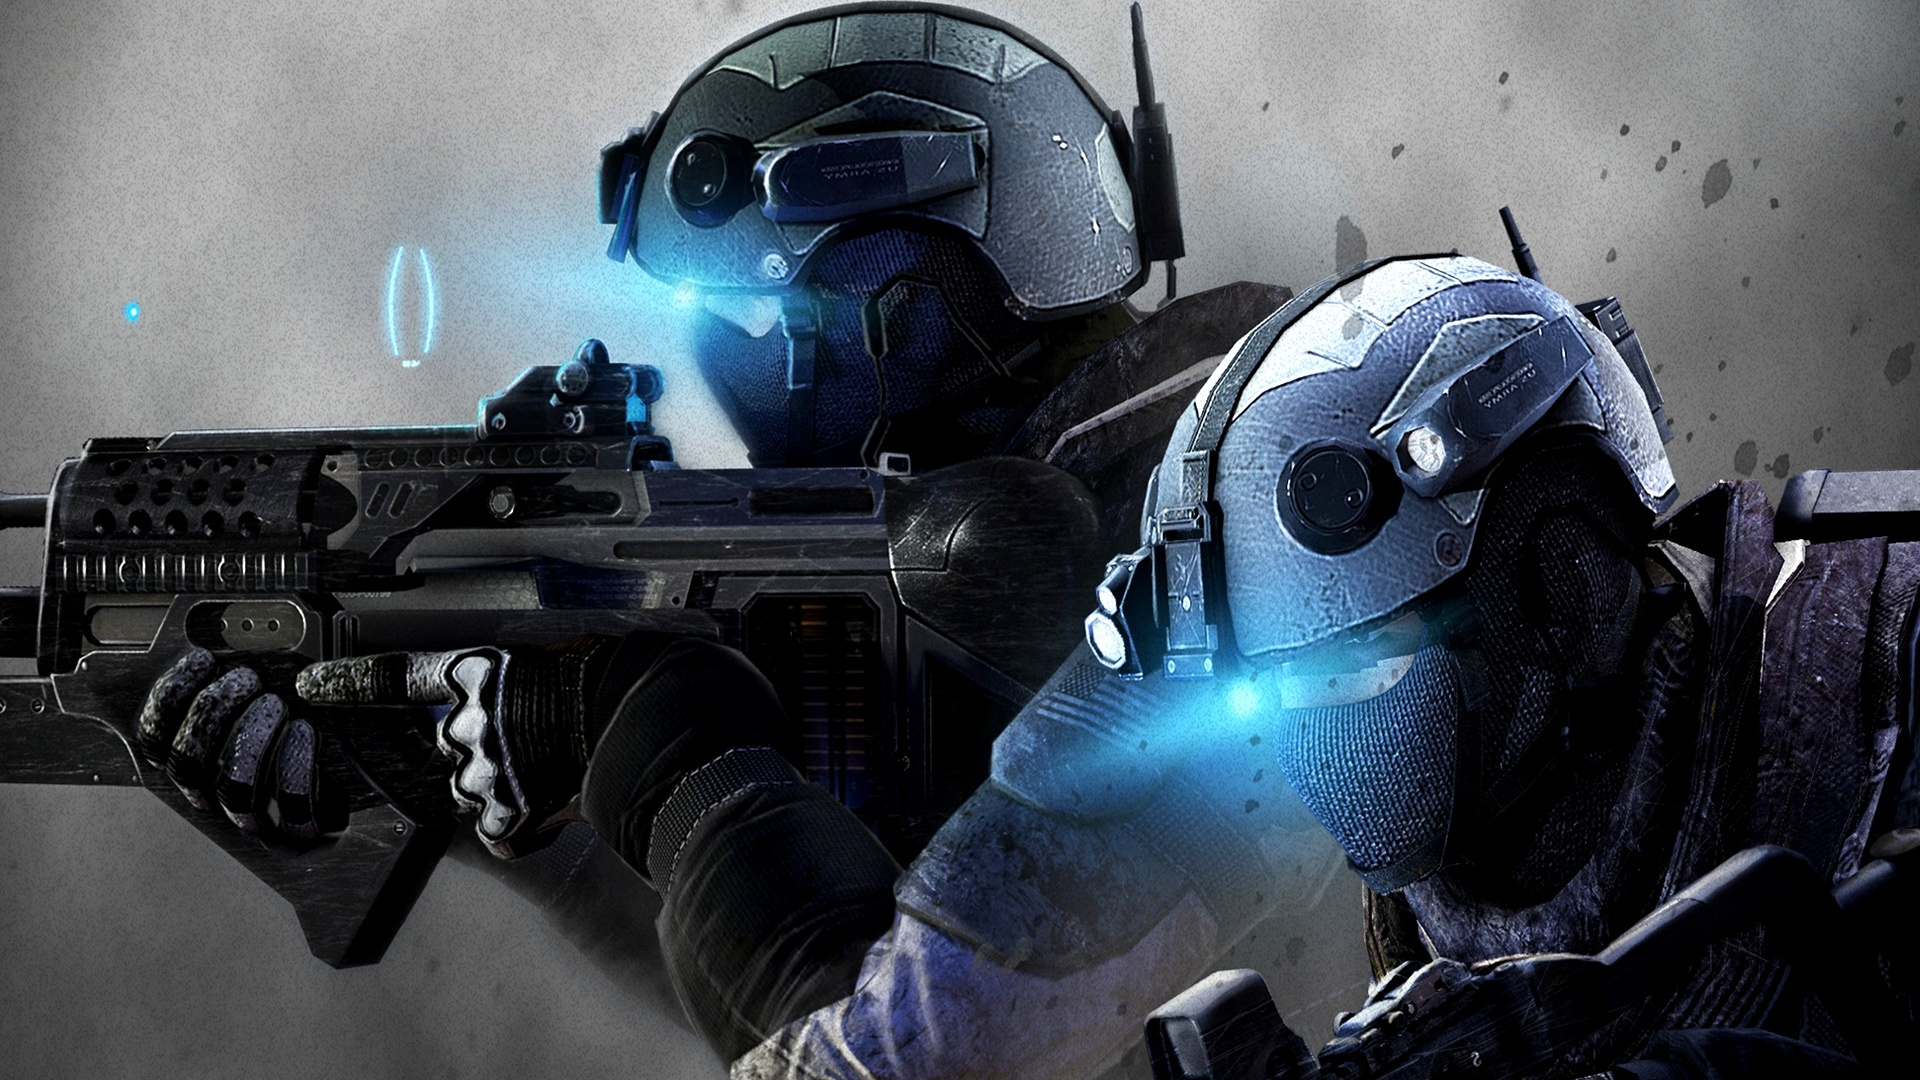 Future Soldier Game Wallpaper 1920x1080 HD Wallpaper Games 1920x1080